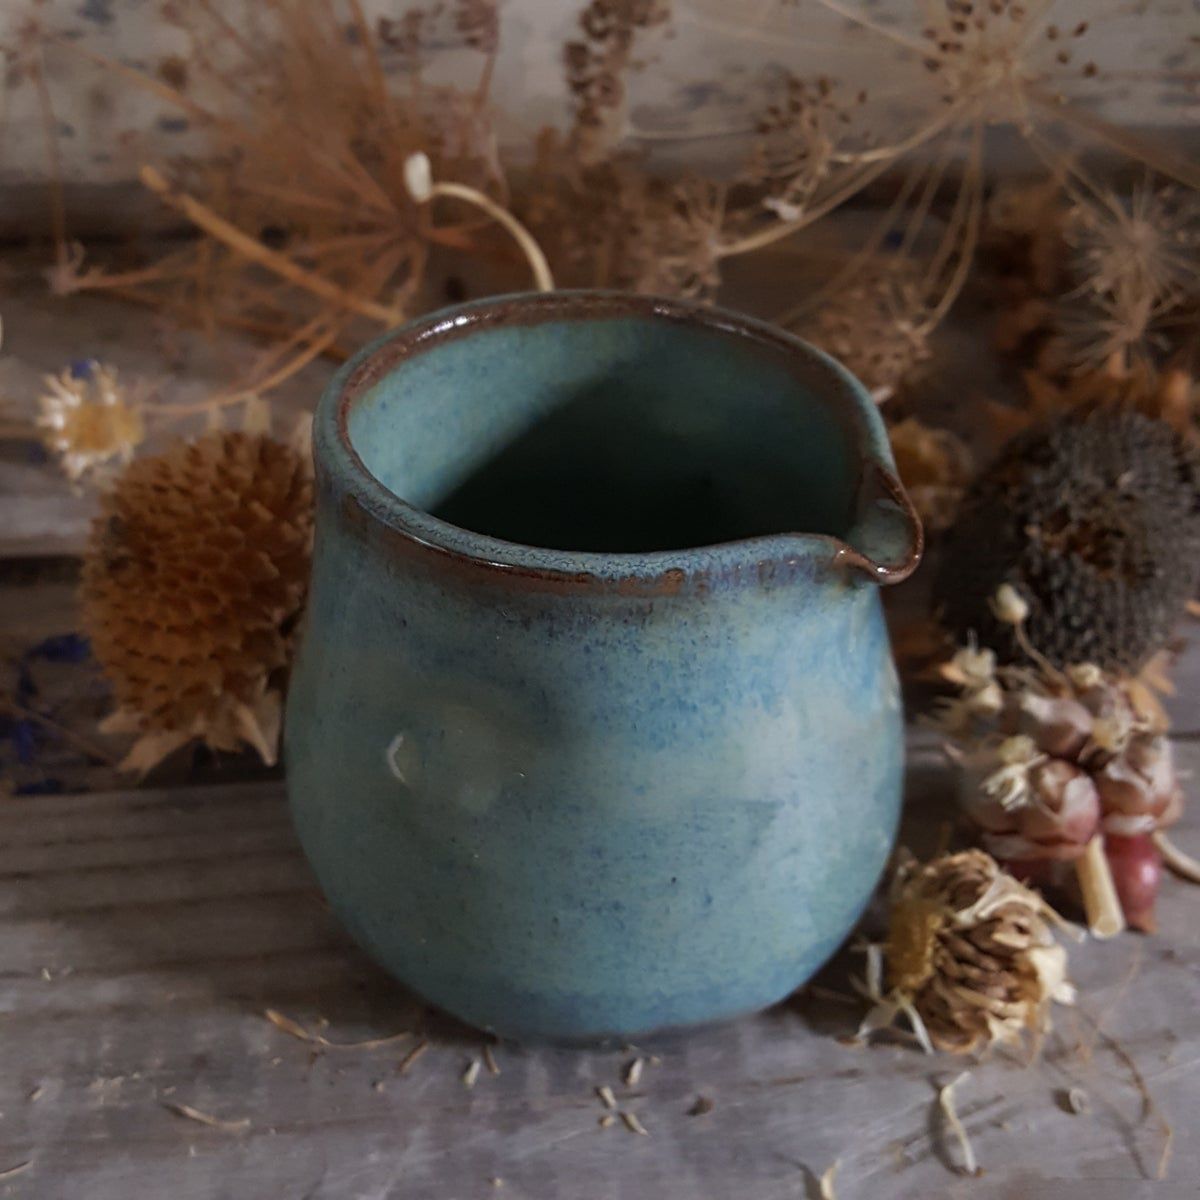 Image of Countertop-worthy Batter Bowl 4 cup with Tiny Duckling Pitcher: Glacial Waters (Turquoise)